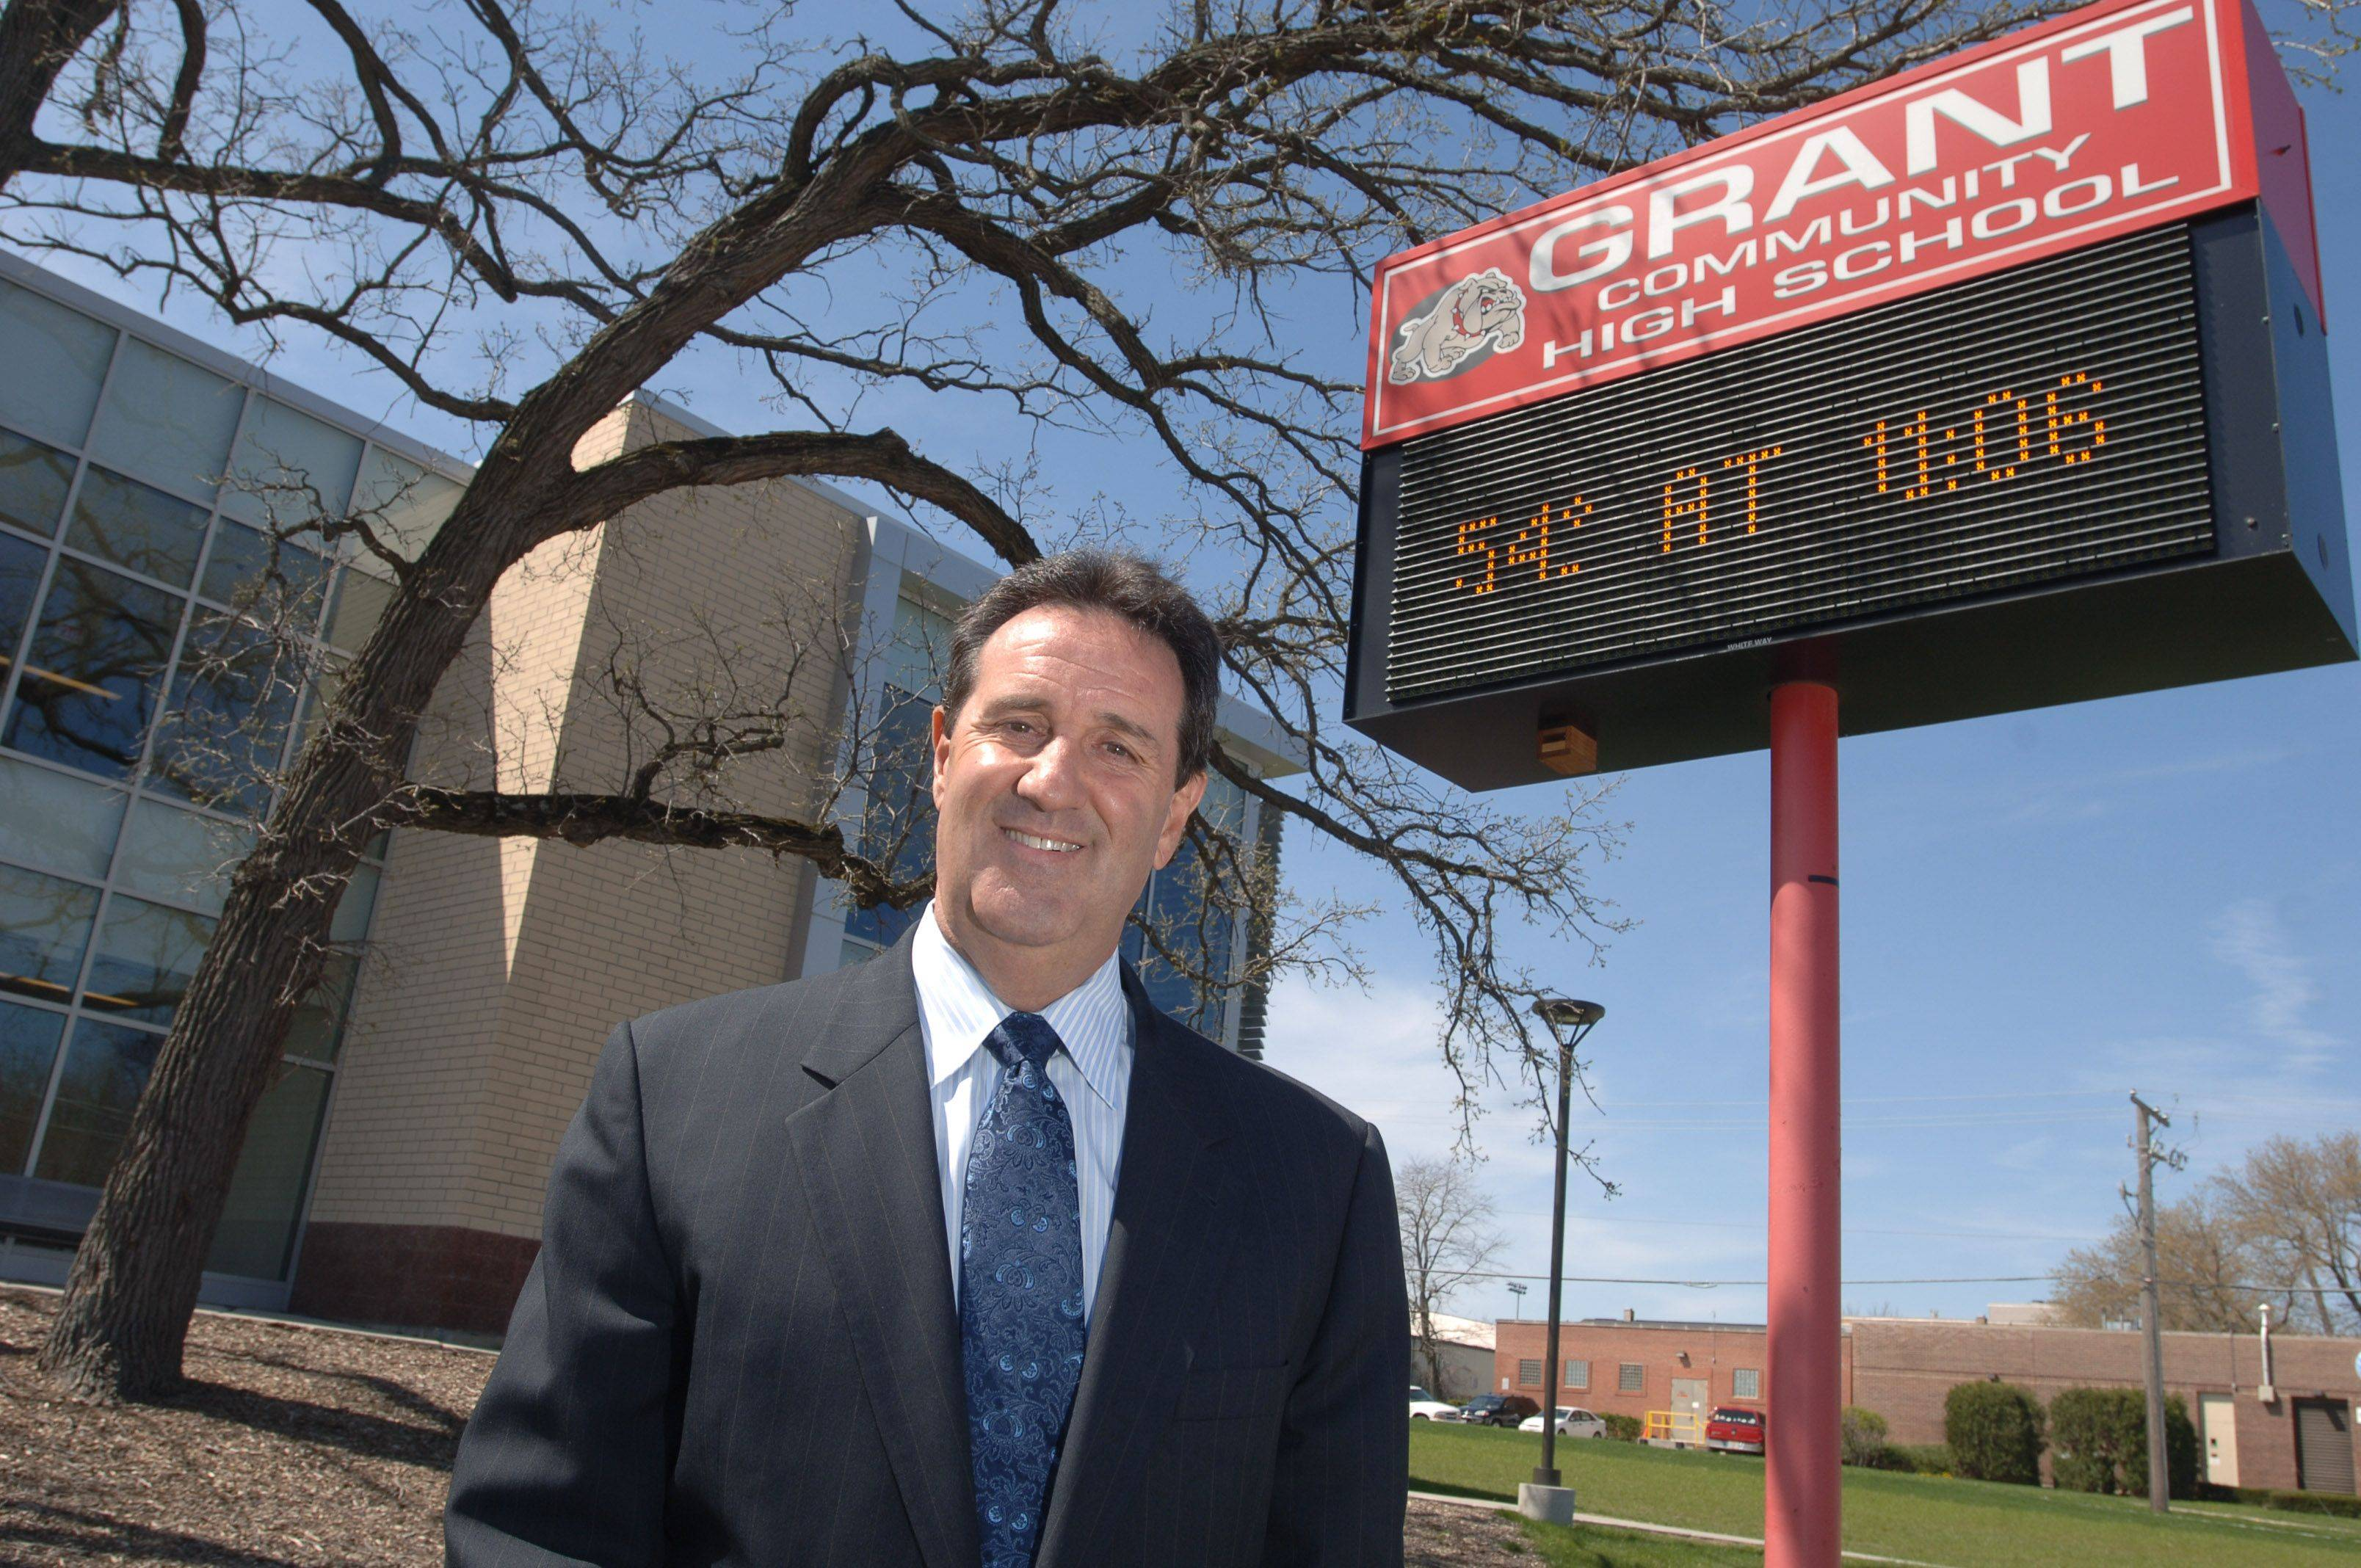 John Benedetti, the longtime superintendent of Grant High School District 124, announced he will retire from the district in 2012. Assistant Superintendent Christi Sefcik will take over when Benedetti steps down.